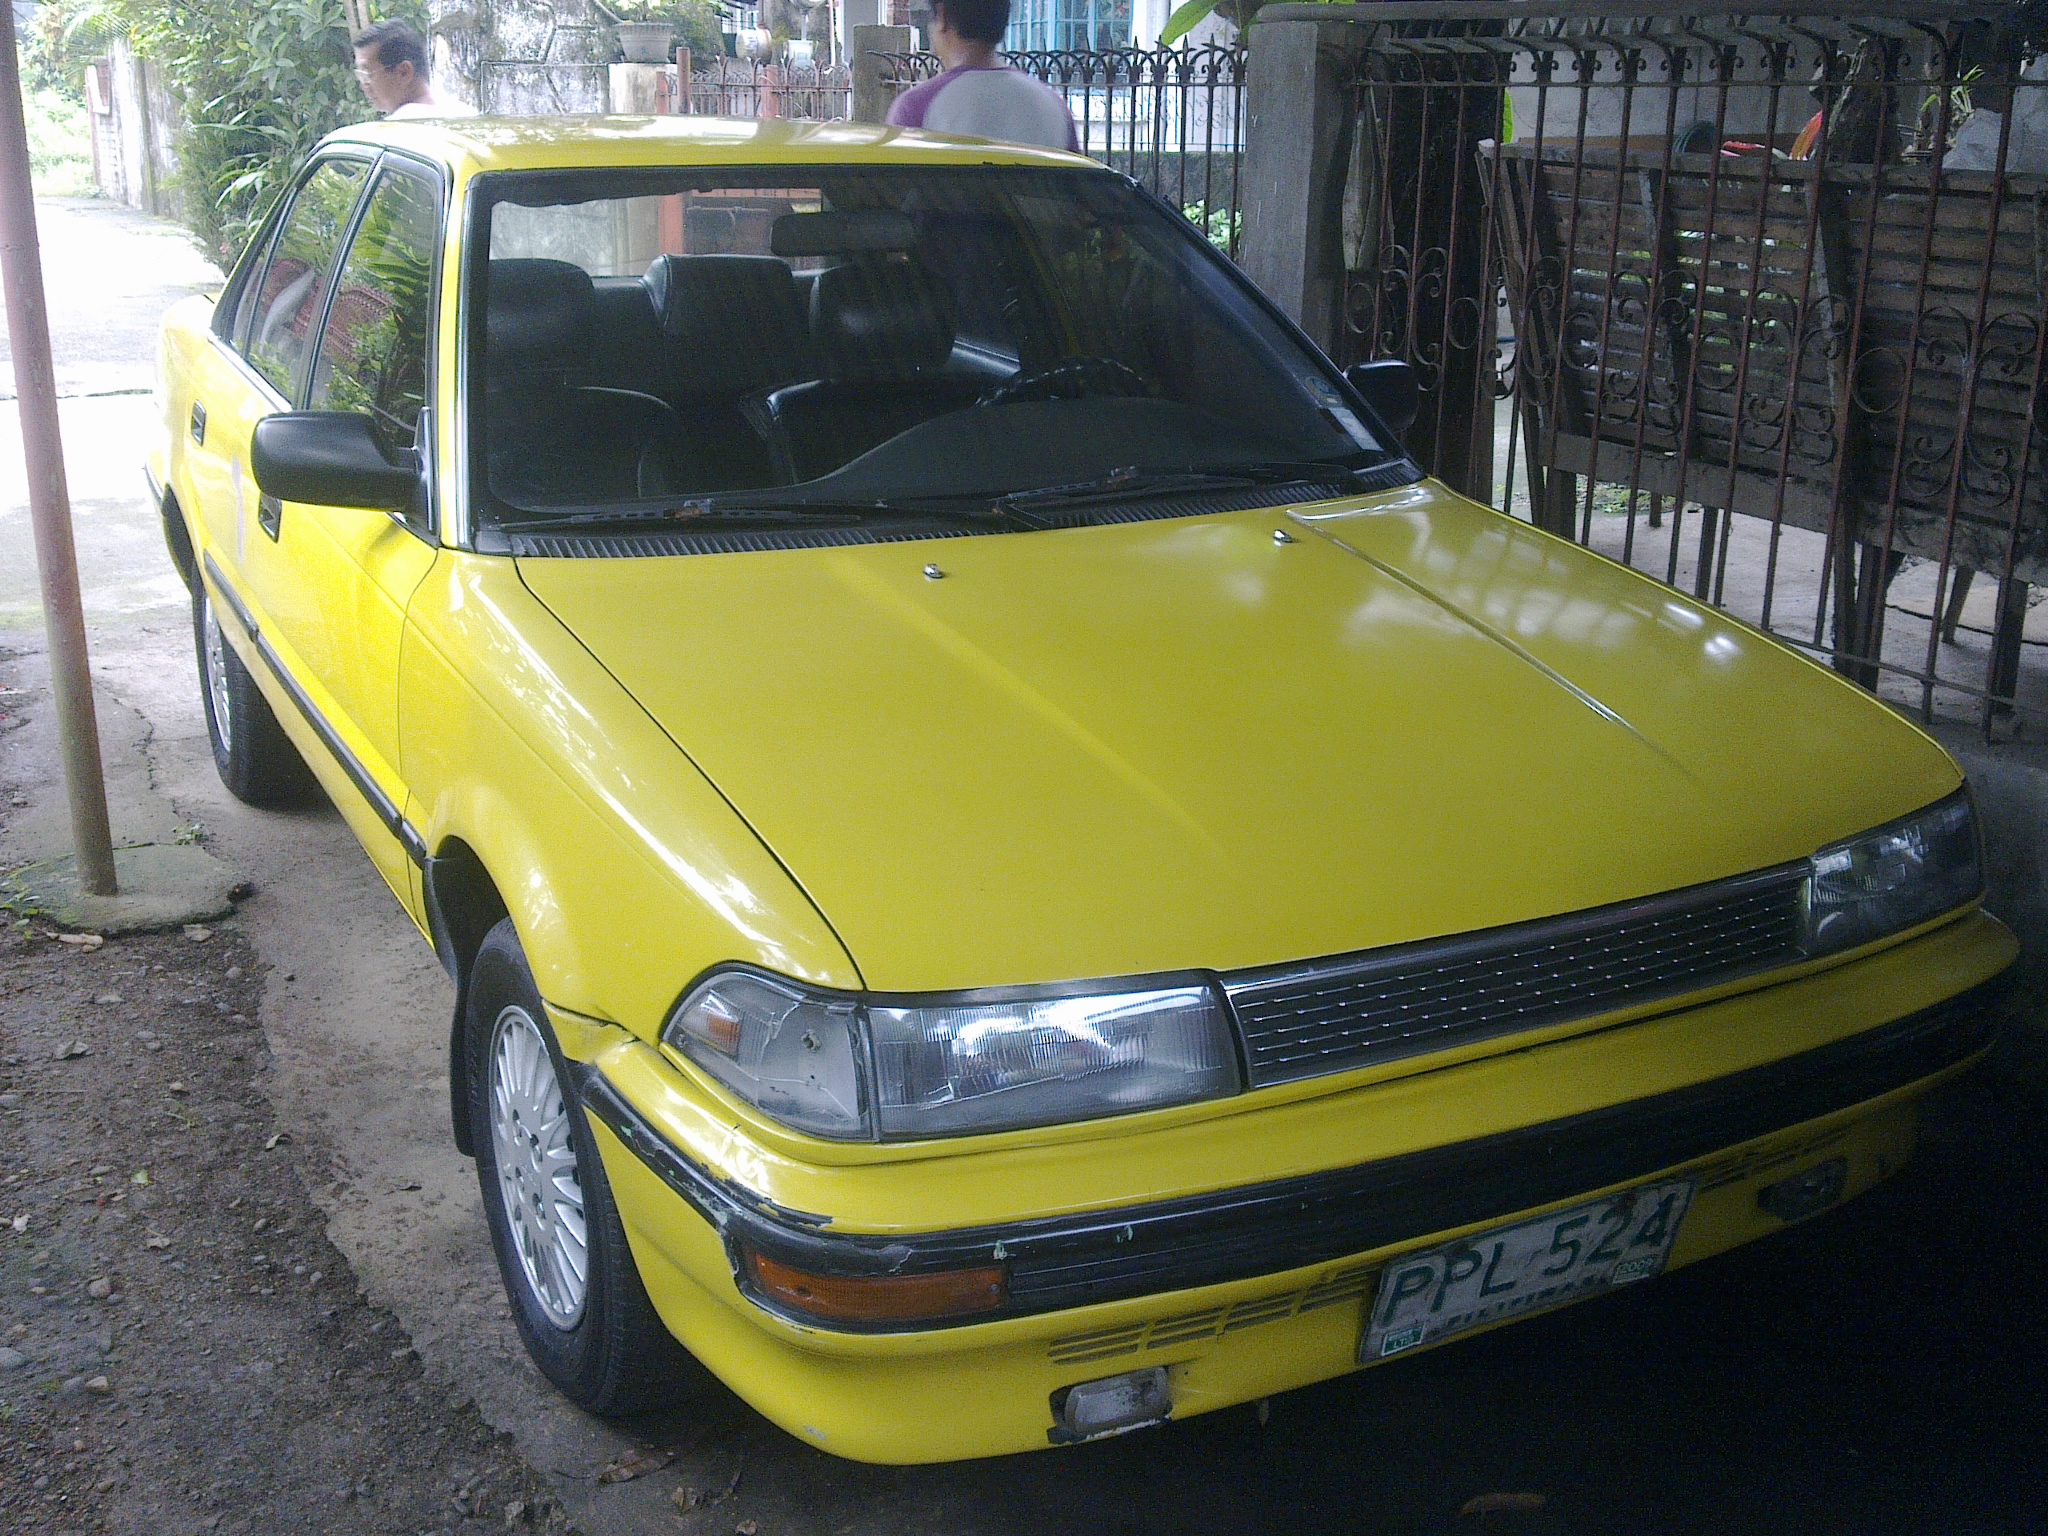 FOR SALE: TOYOTA COROLLA GL 1990